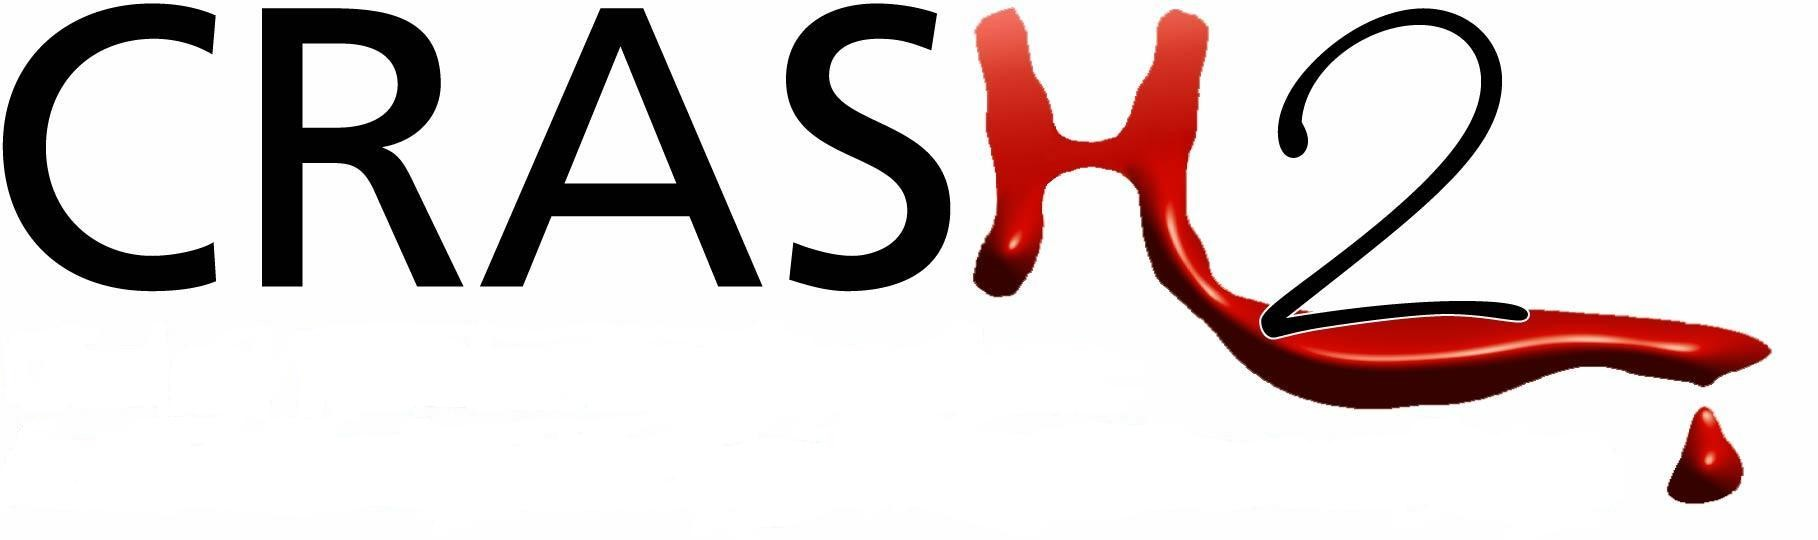 CRASH2 logo